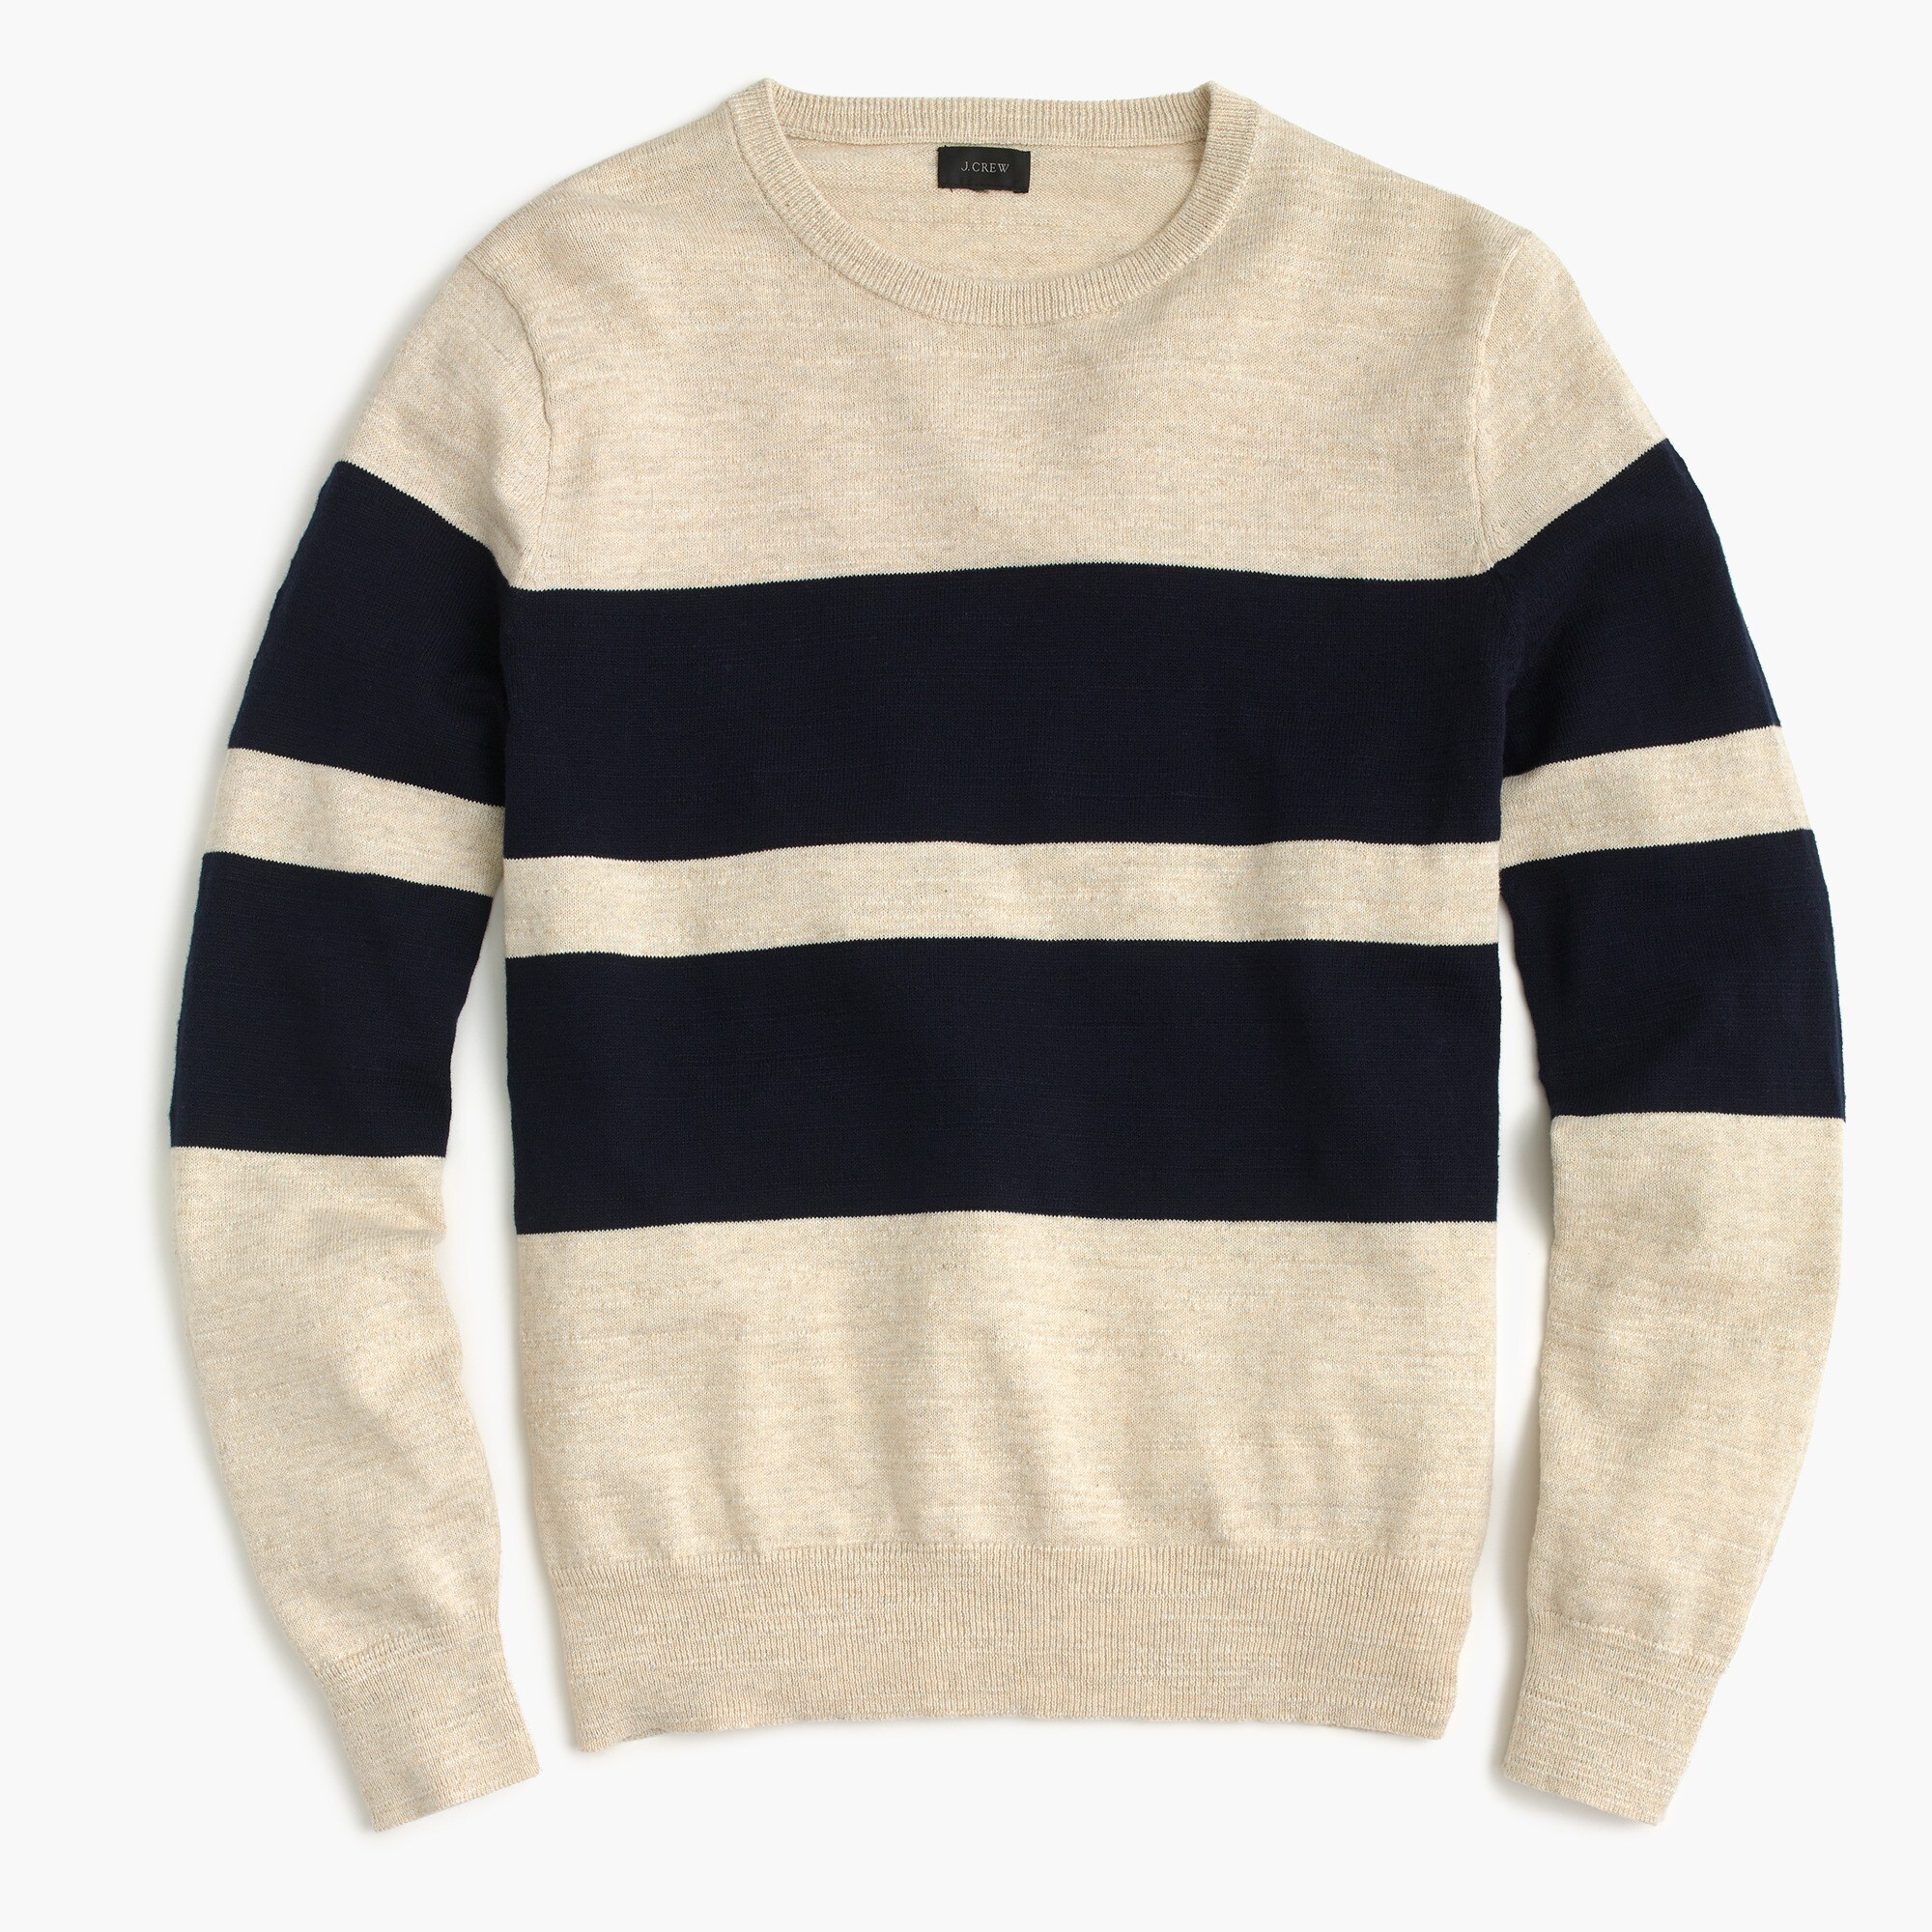 Image 1 for Slim rugged cotton crewneck sweater in bold stripe